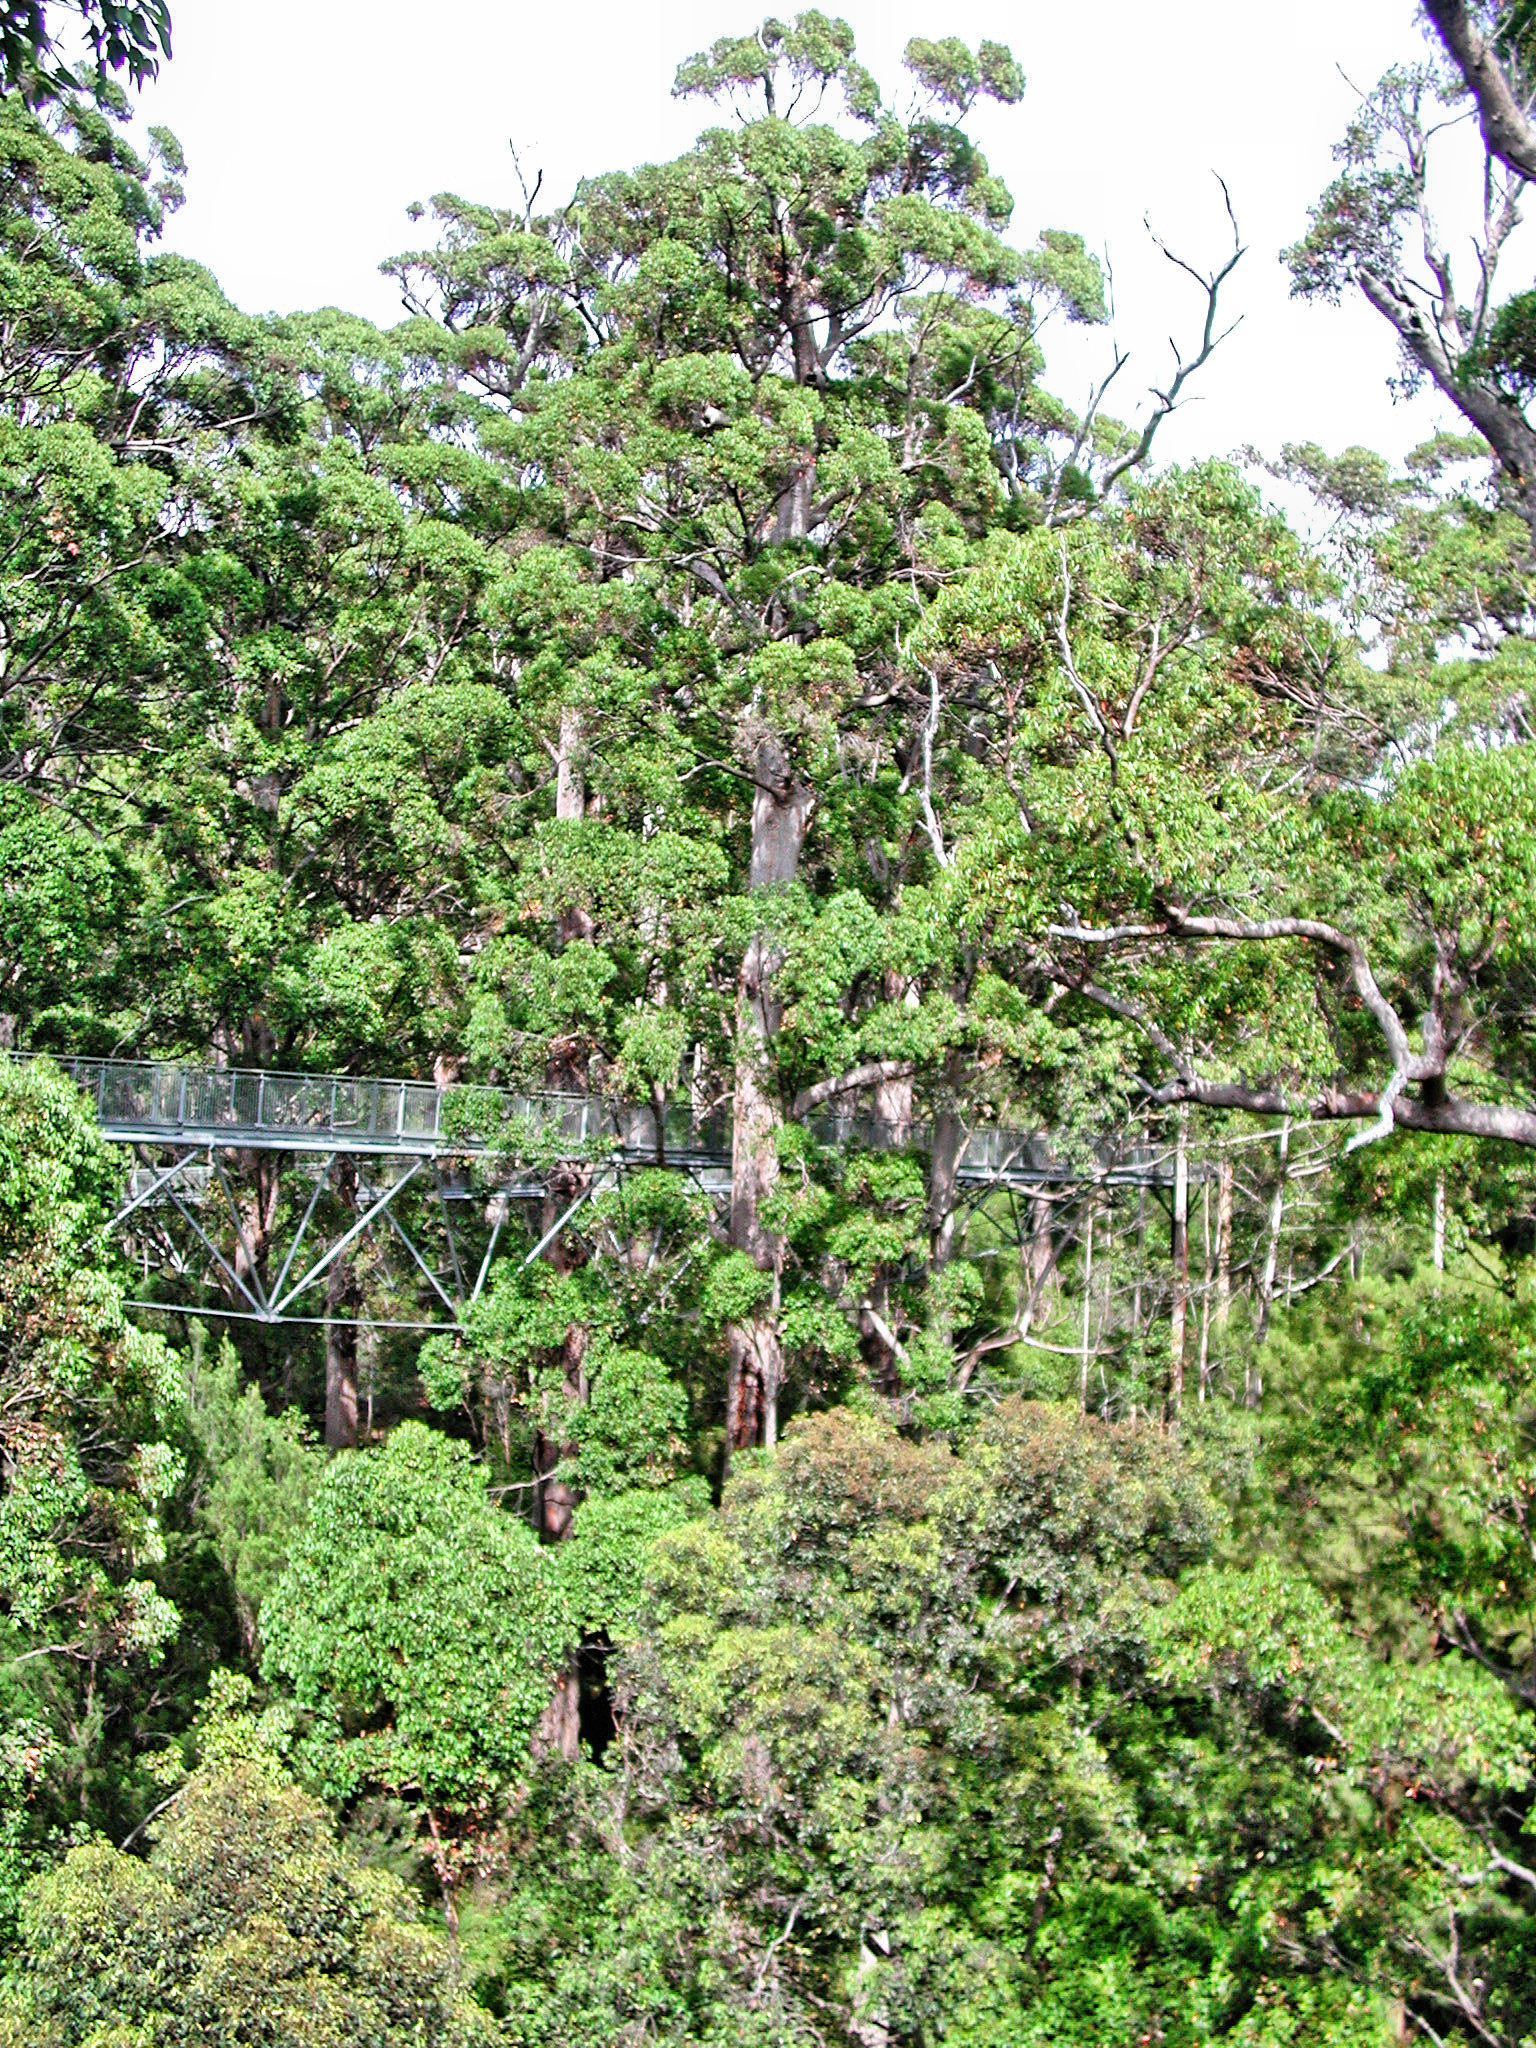 This should be Treetop-walk-6.jpeg.  Is it missing?